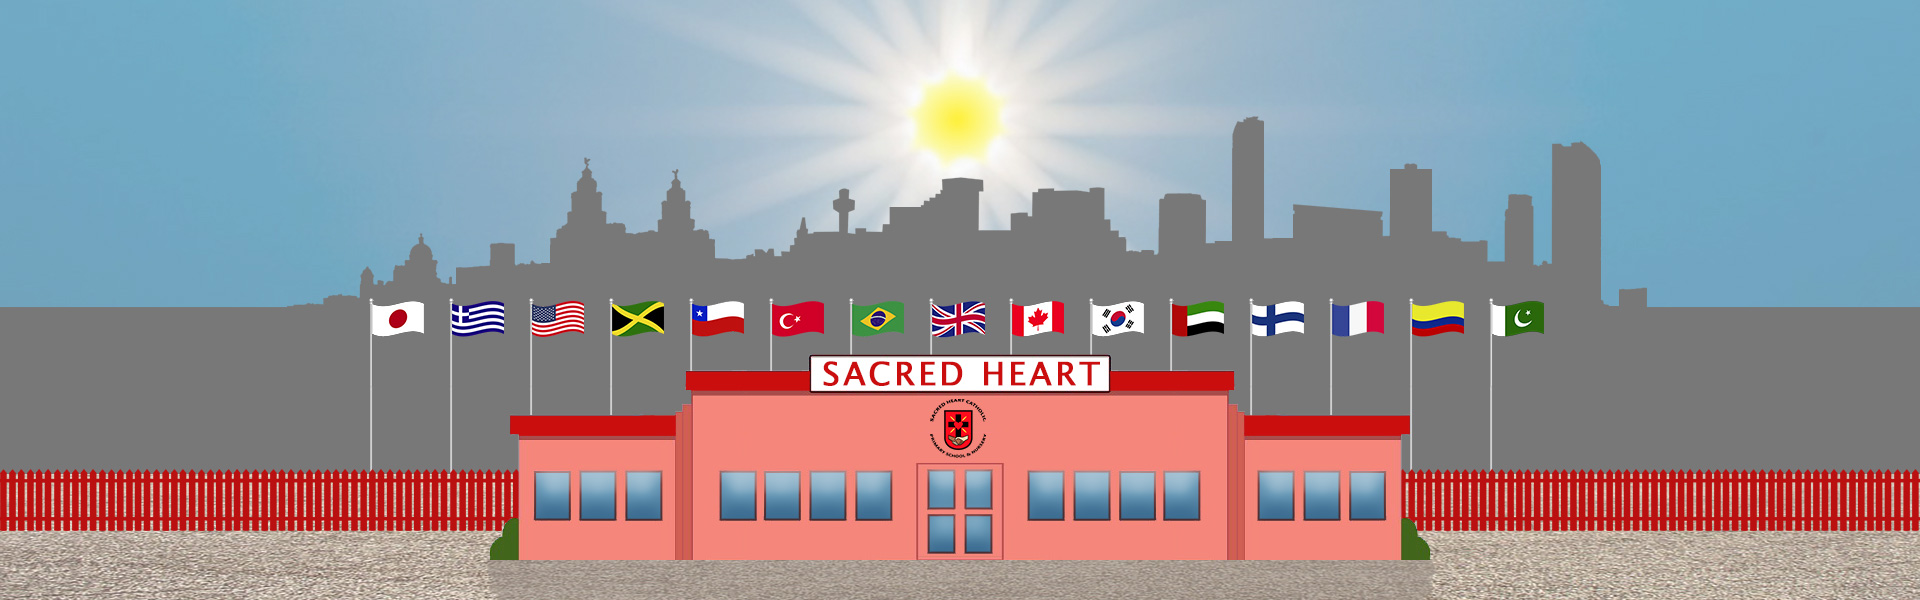 sacred-heart-liverpool-world-in-one-school-9-summer